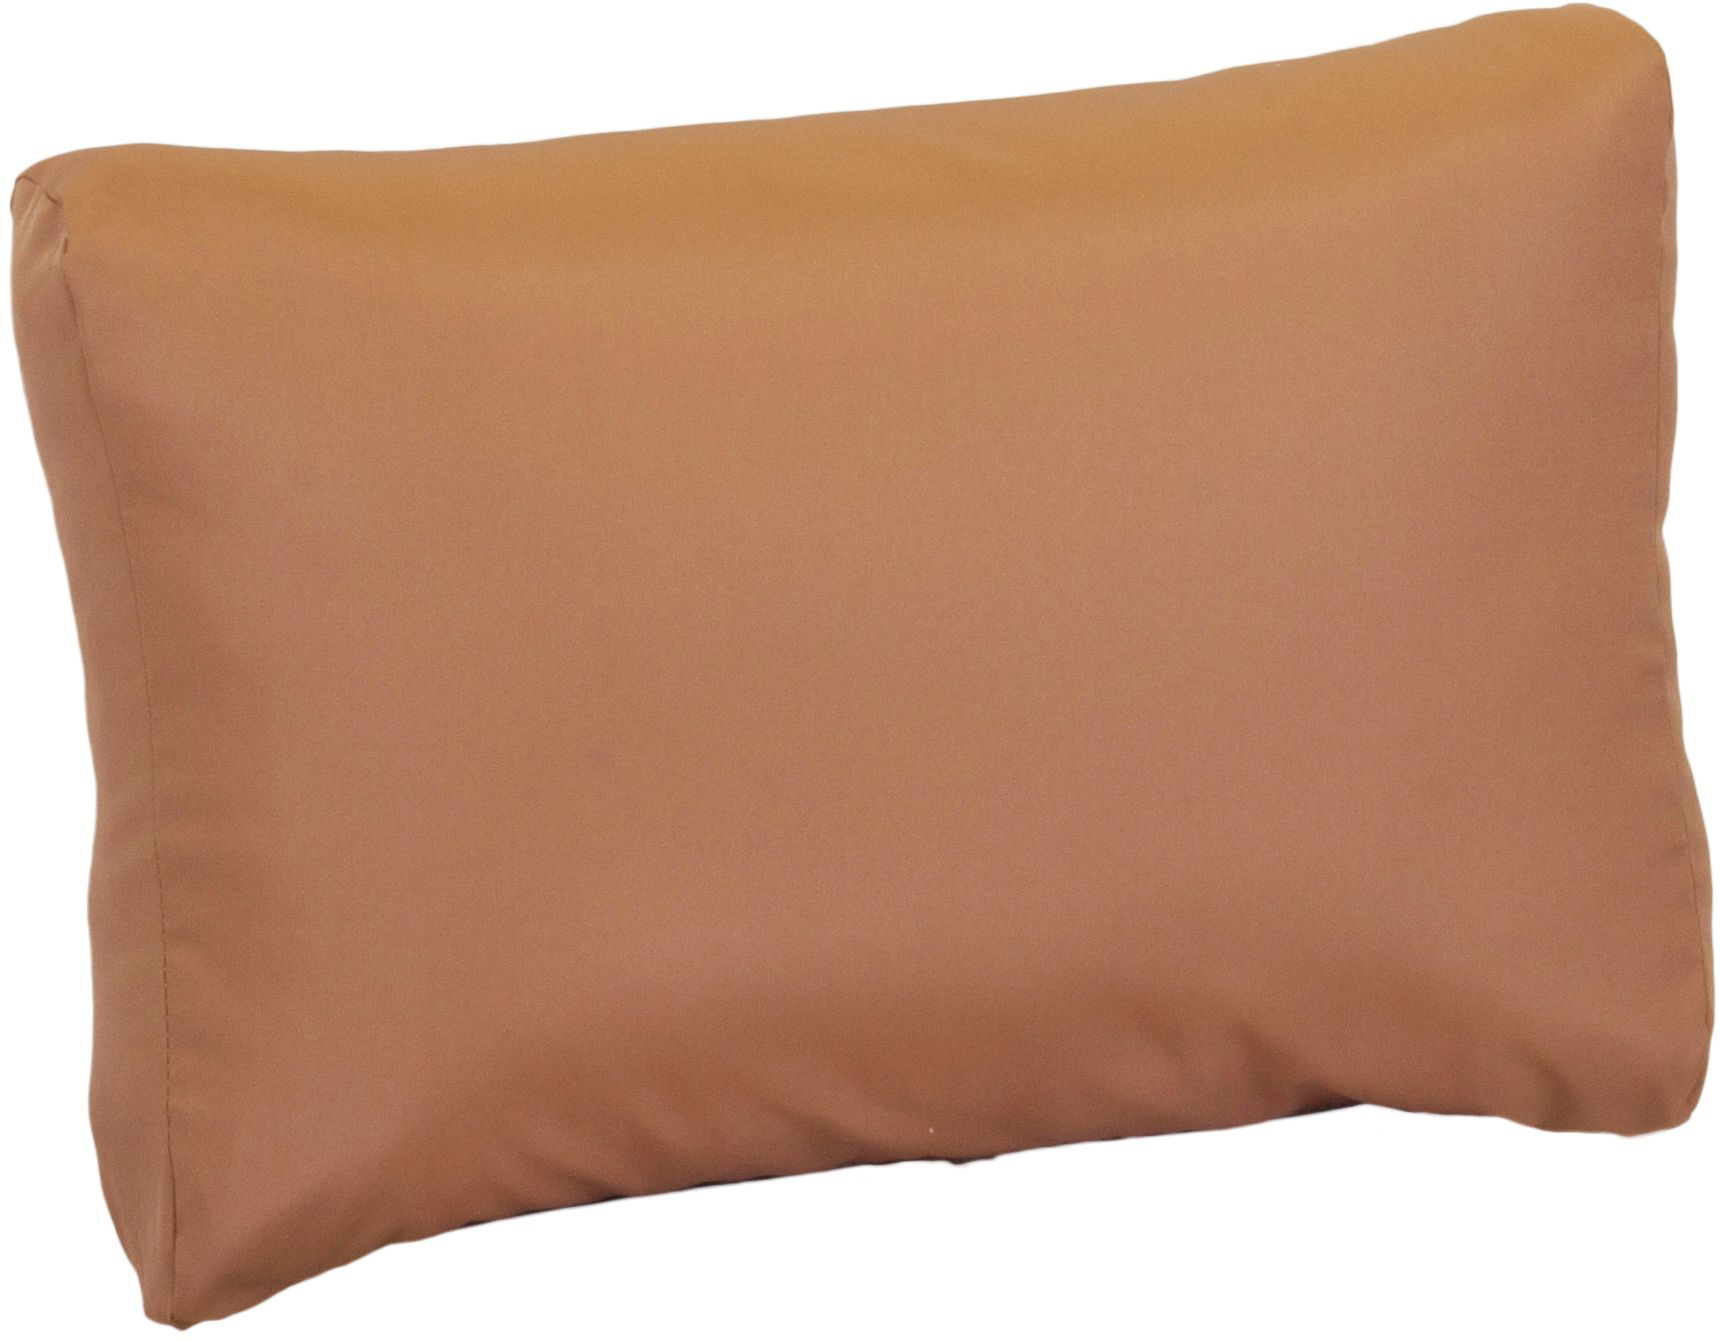 Outdoor Kissen 40 X 40 Back Cushion For Palette Sofas Approx 60 X 40 Cm Made Of Water Repellent 100 Polyester In Sand